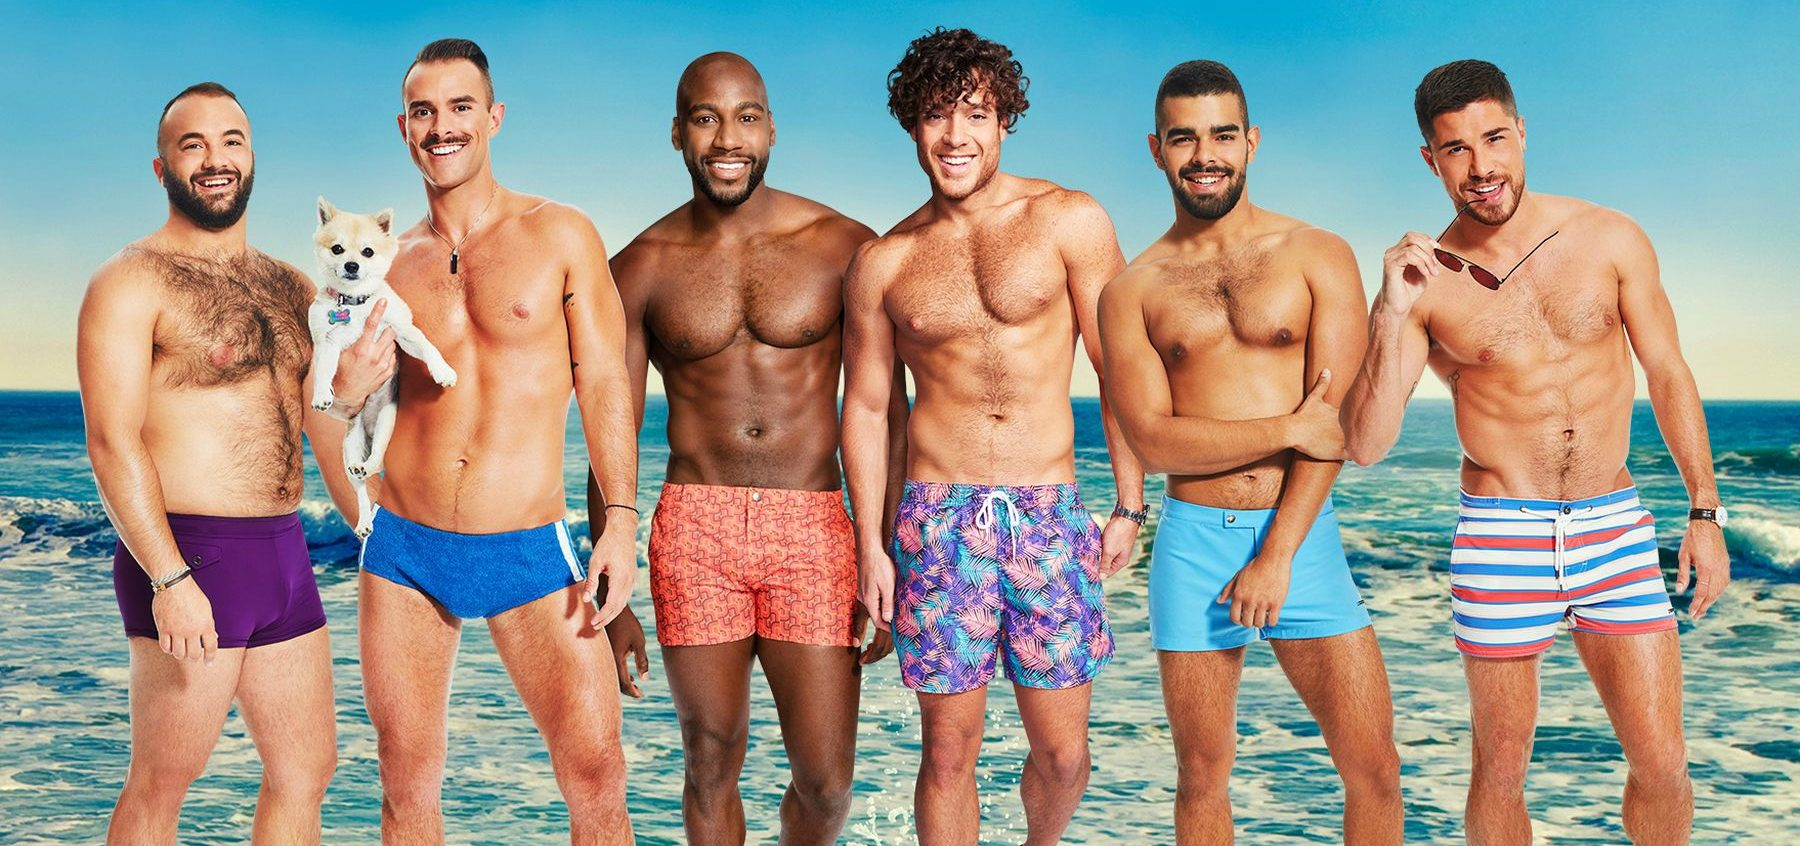 'Fire Island' Trailer: 6 Sexy Gay Men and Their Drama are Coming to Logo (Video)